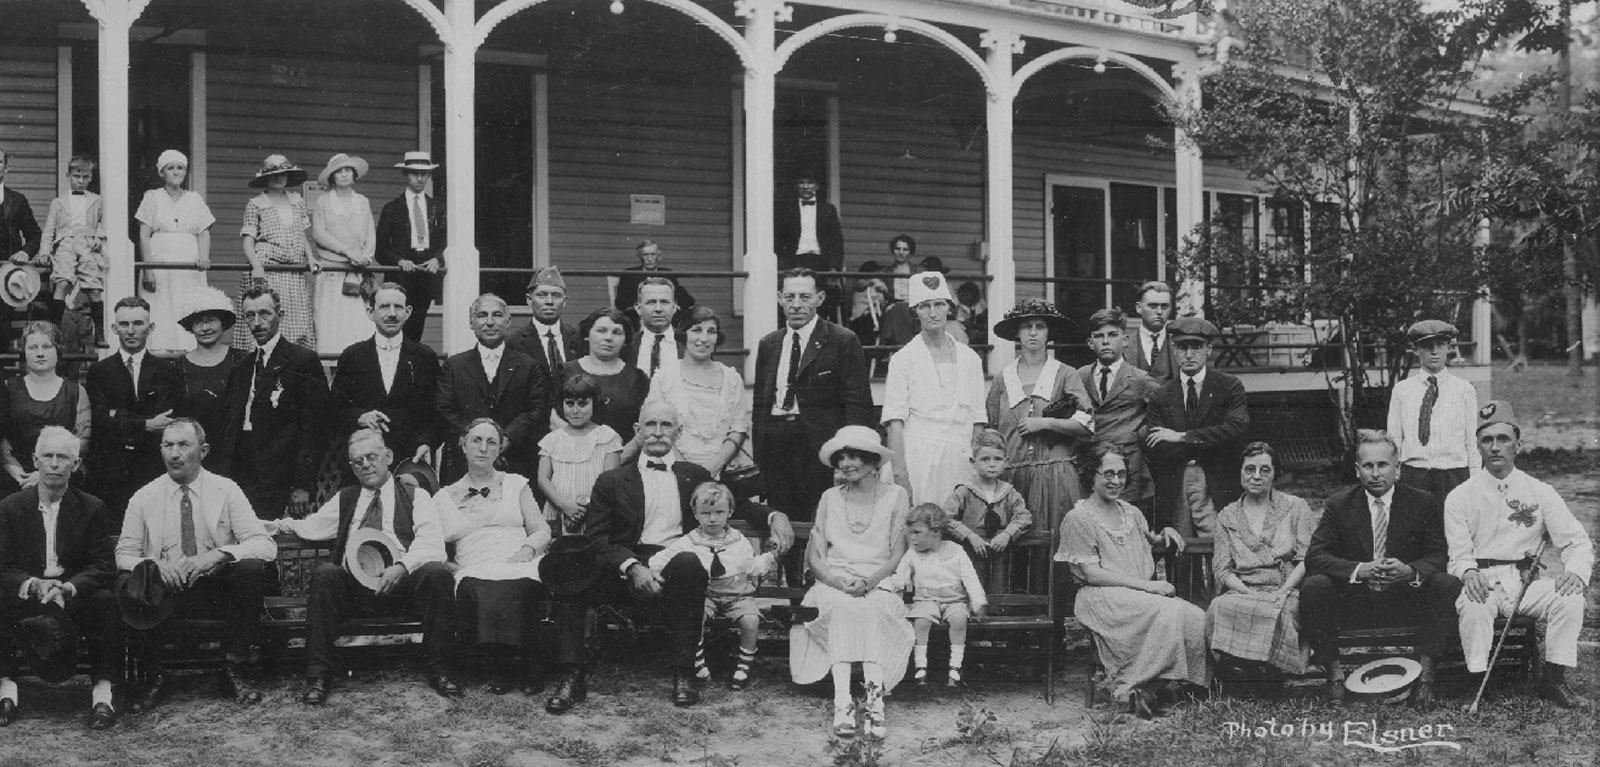 Residents of the early Moosehaven, along with family members, pose on the front porch of Bradon Hall. Black and white photo shows men, women, and children in 1920s attire.